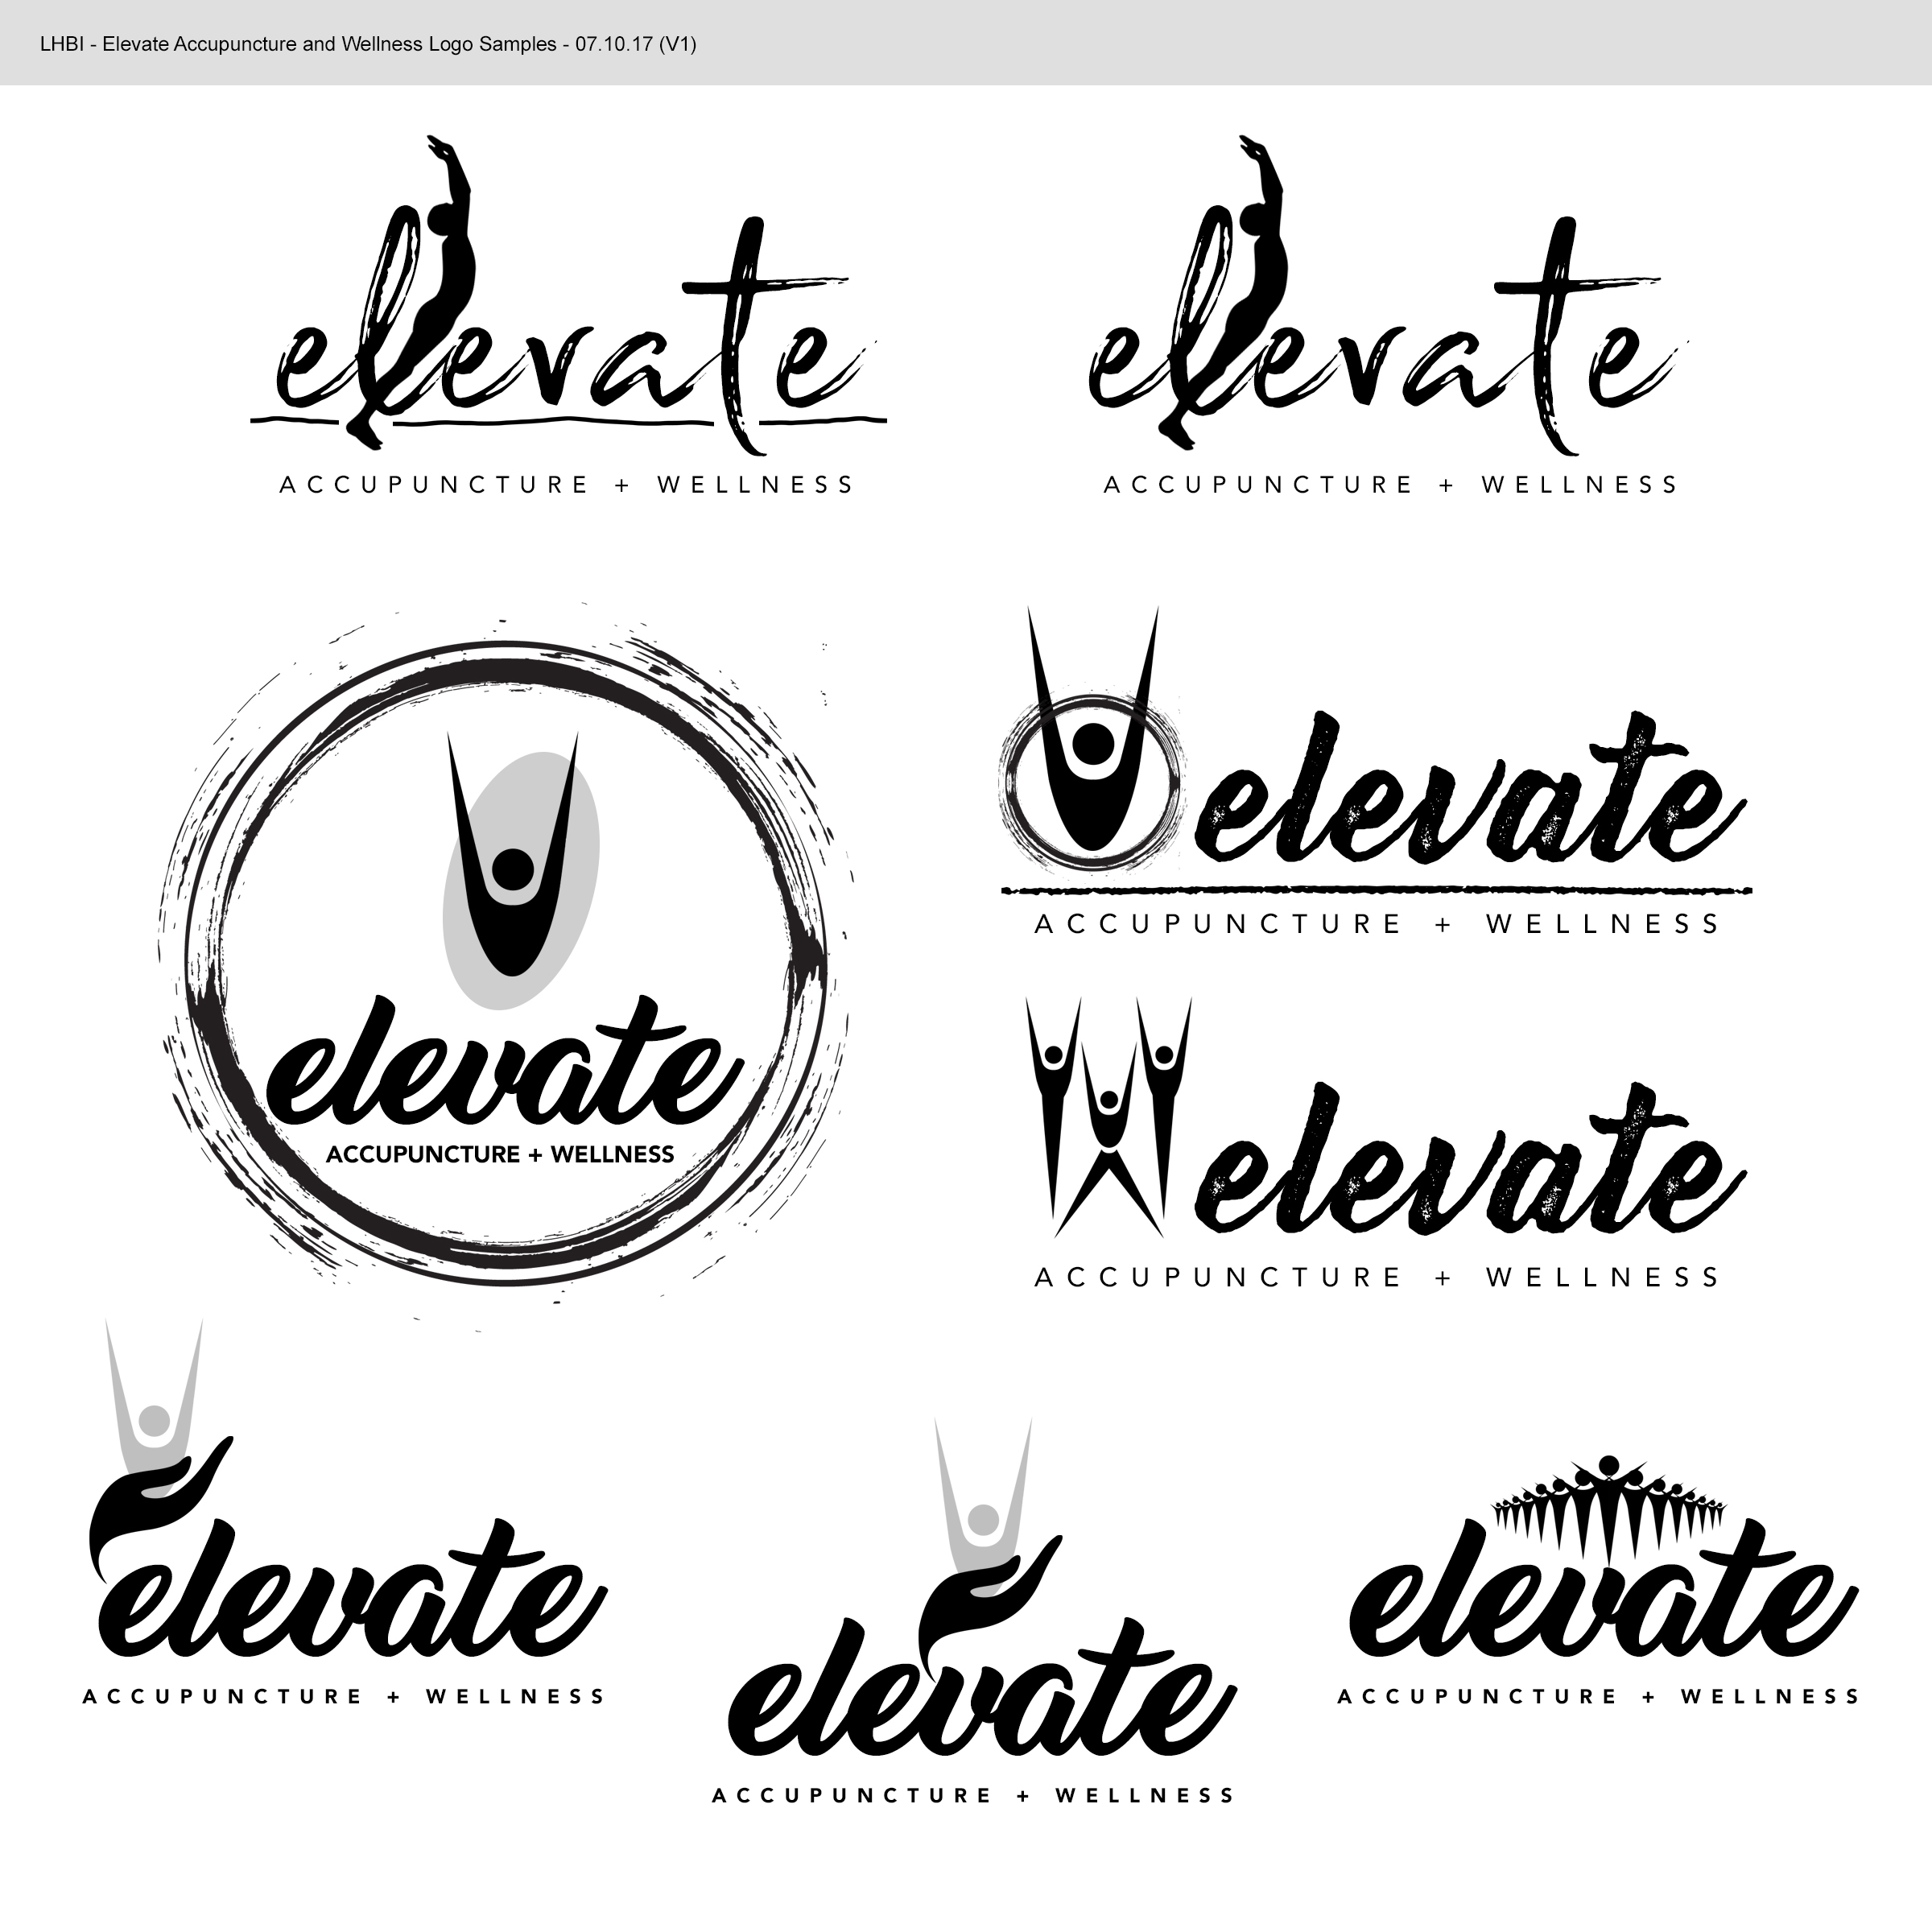 Elevate_logo_samples_07.10.17.jpg